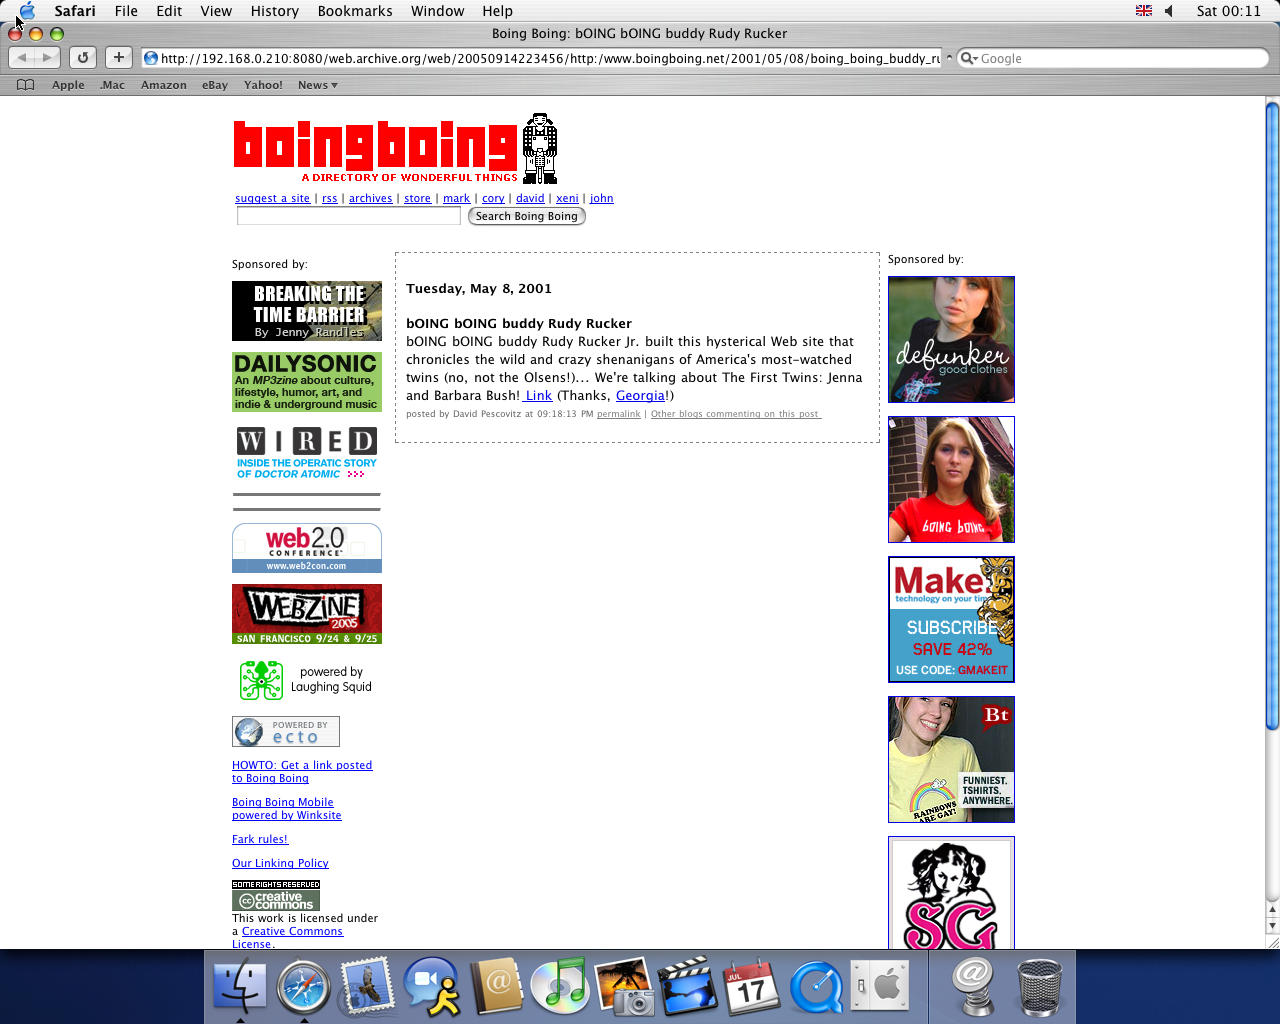 OS X 10.3 PPC with Safari 1.1 displaying a page from BoingBoing.net archived at September 14, 2005 at 22:34:56